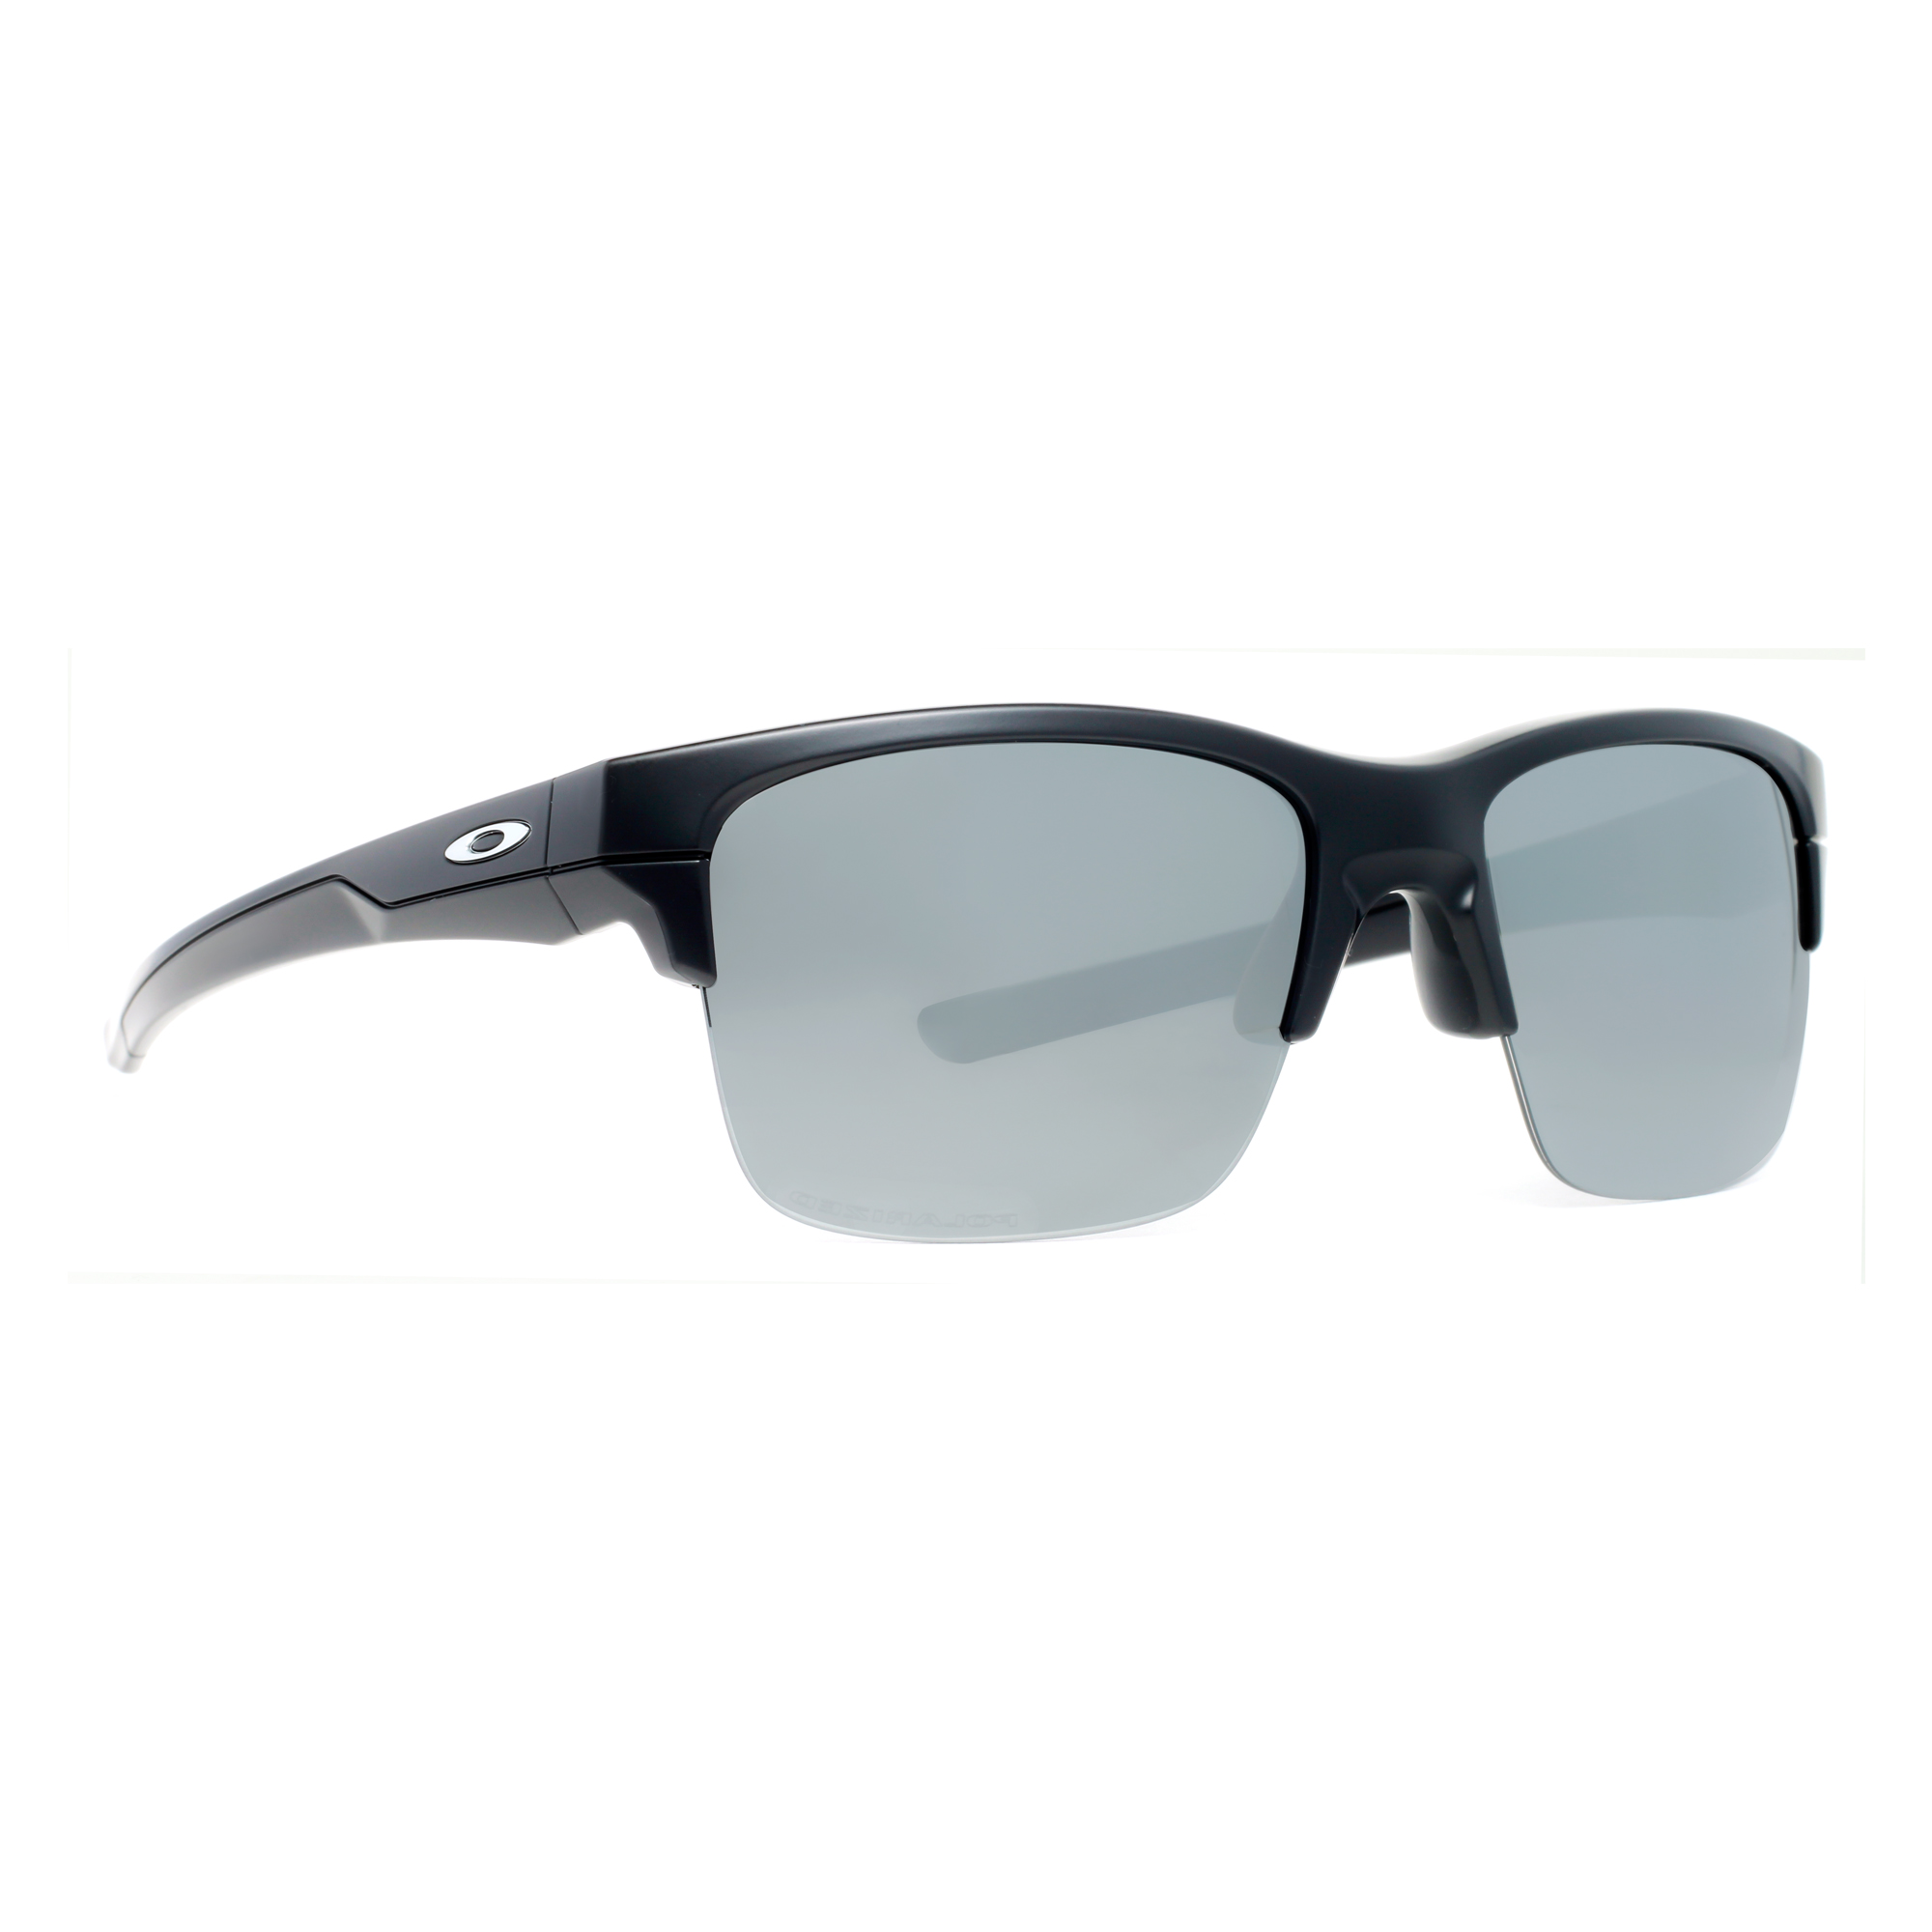 3018ff959f Oakley Men s Batwolf Polarized Sunglasses - Matte Black